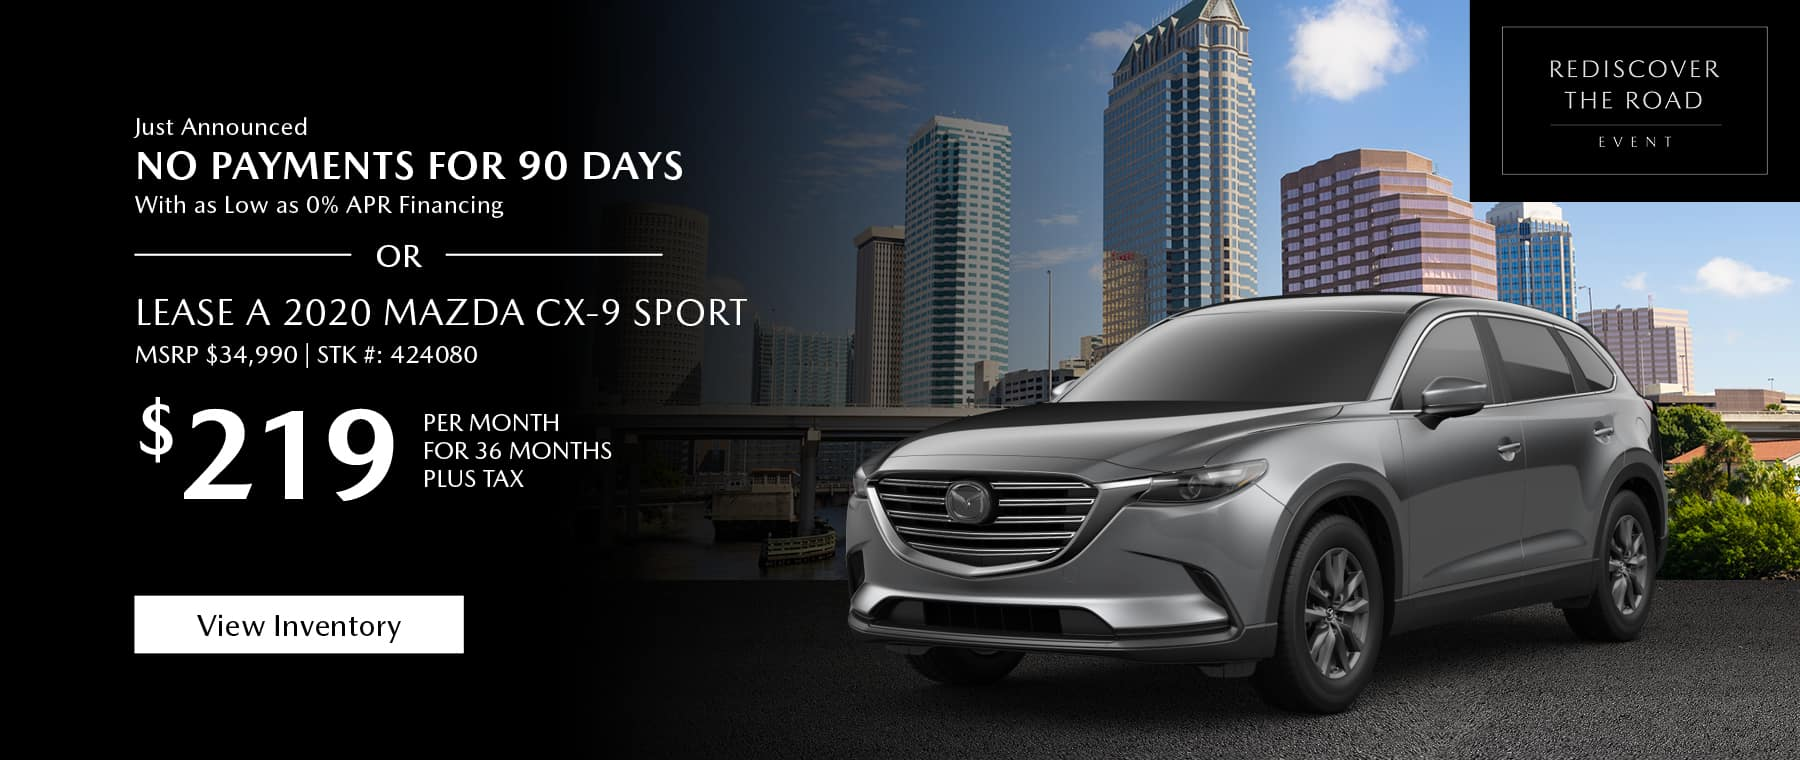 Just Announced, No payments for 90 days with as low as %0 APR financing, or lease the 2020 Mazda CX-9 for $219 per month, plus tax. View inventory for 36 months. Click or tap here to view our inventory.